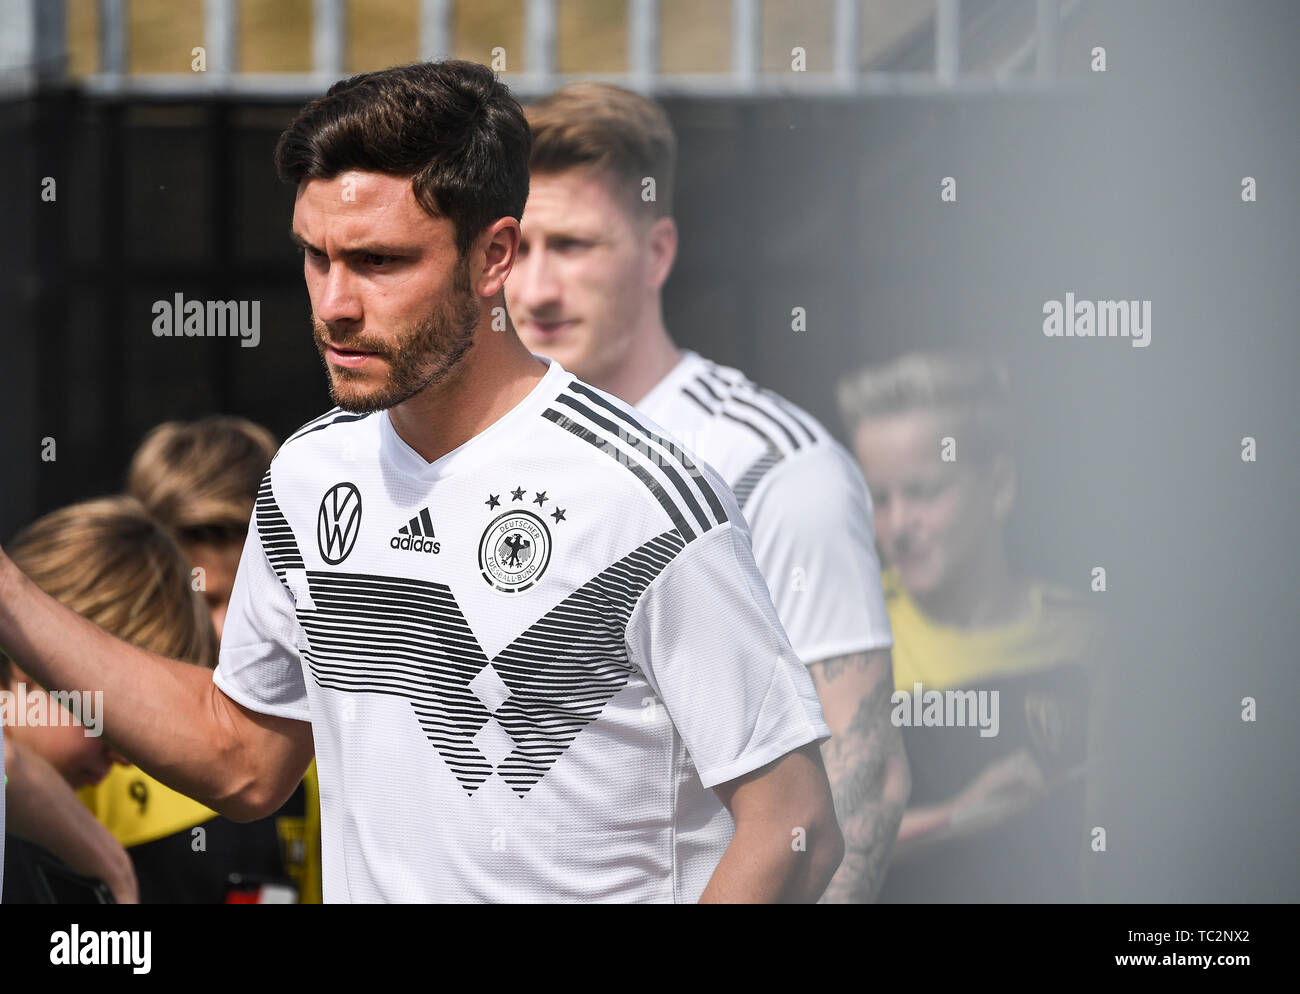 Jonas Venlo A German Footballer Stock Photos A German Footballer Stock